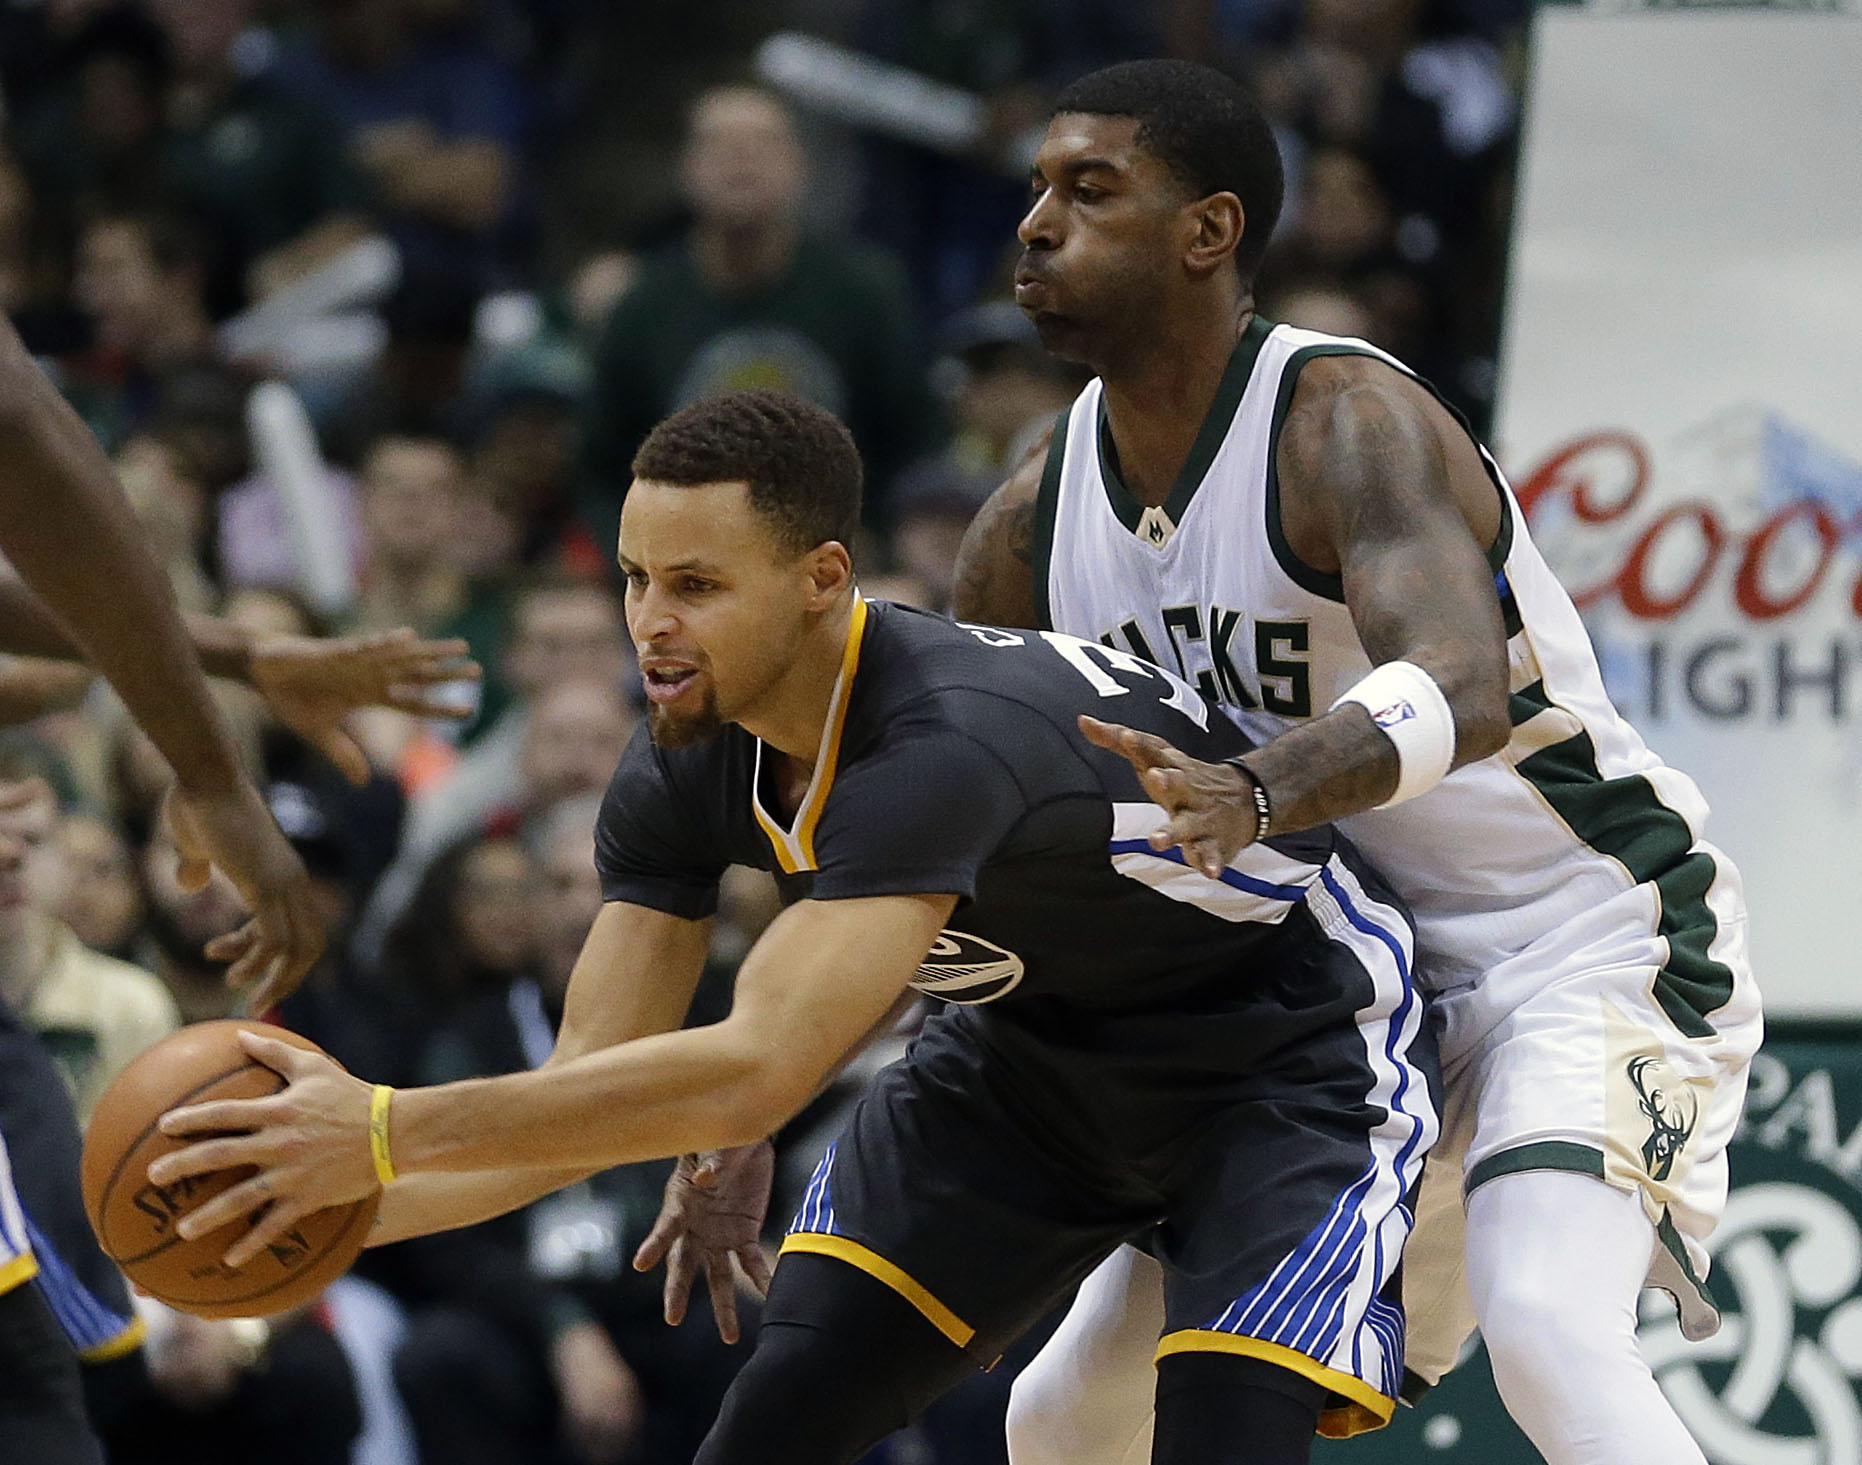 Milwaukee Bucks' O.J. Mayo defends Golden State Warriors' Stephen Curry during the second half of an NBA basketball game Saturday, Dec. 12, 2015, in Milwaukee. The Bucks won 108-95. (AP Photo/Aaron Gash)